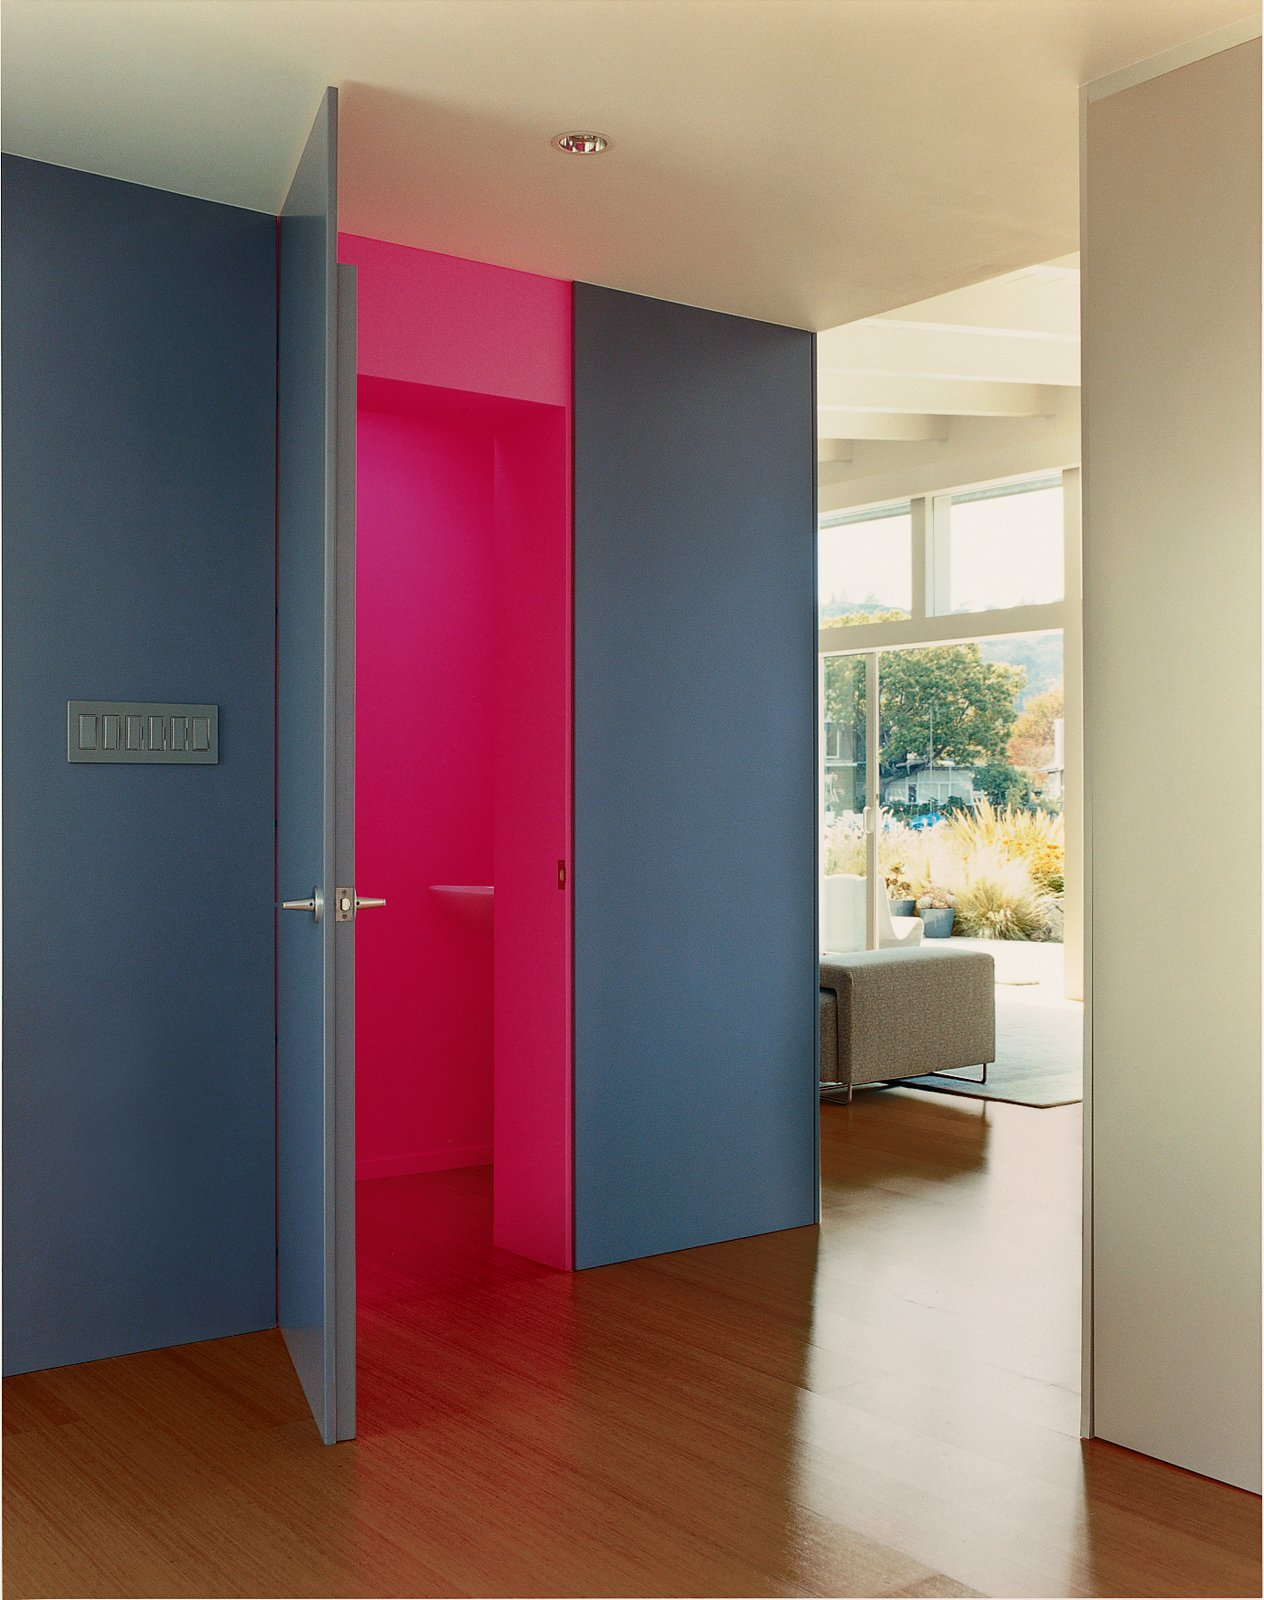 In the foyer, Deam left one surprise: The neon-pink guest bathroom is hidden behind heavy, dark-gray walls.  Composition by Lara Deam from The Bellwether of Belvedere